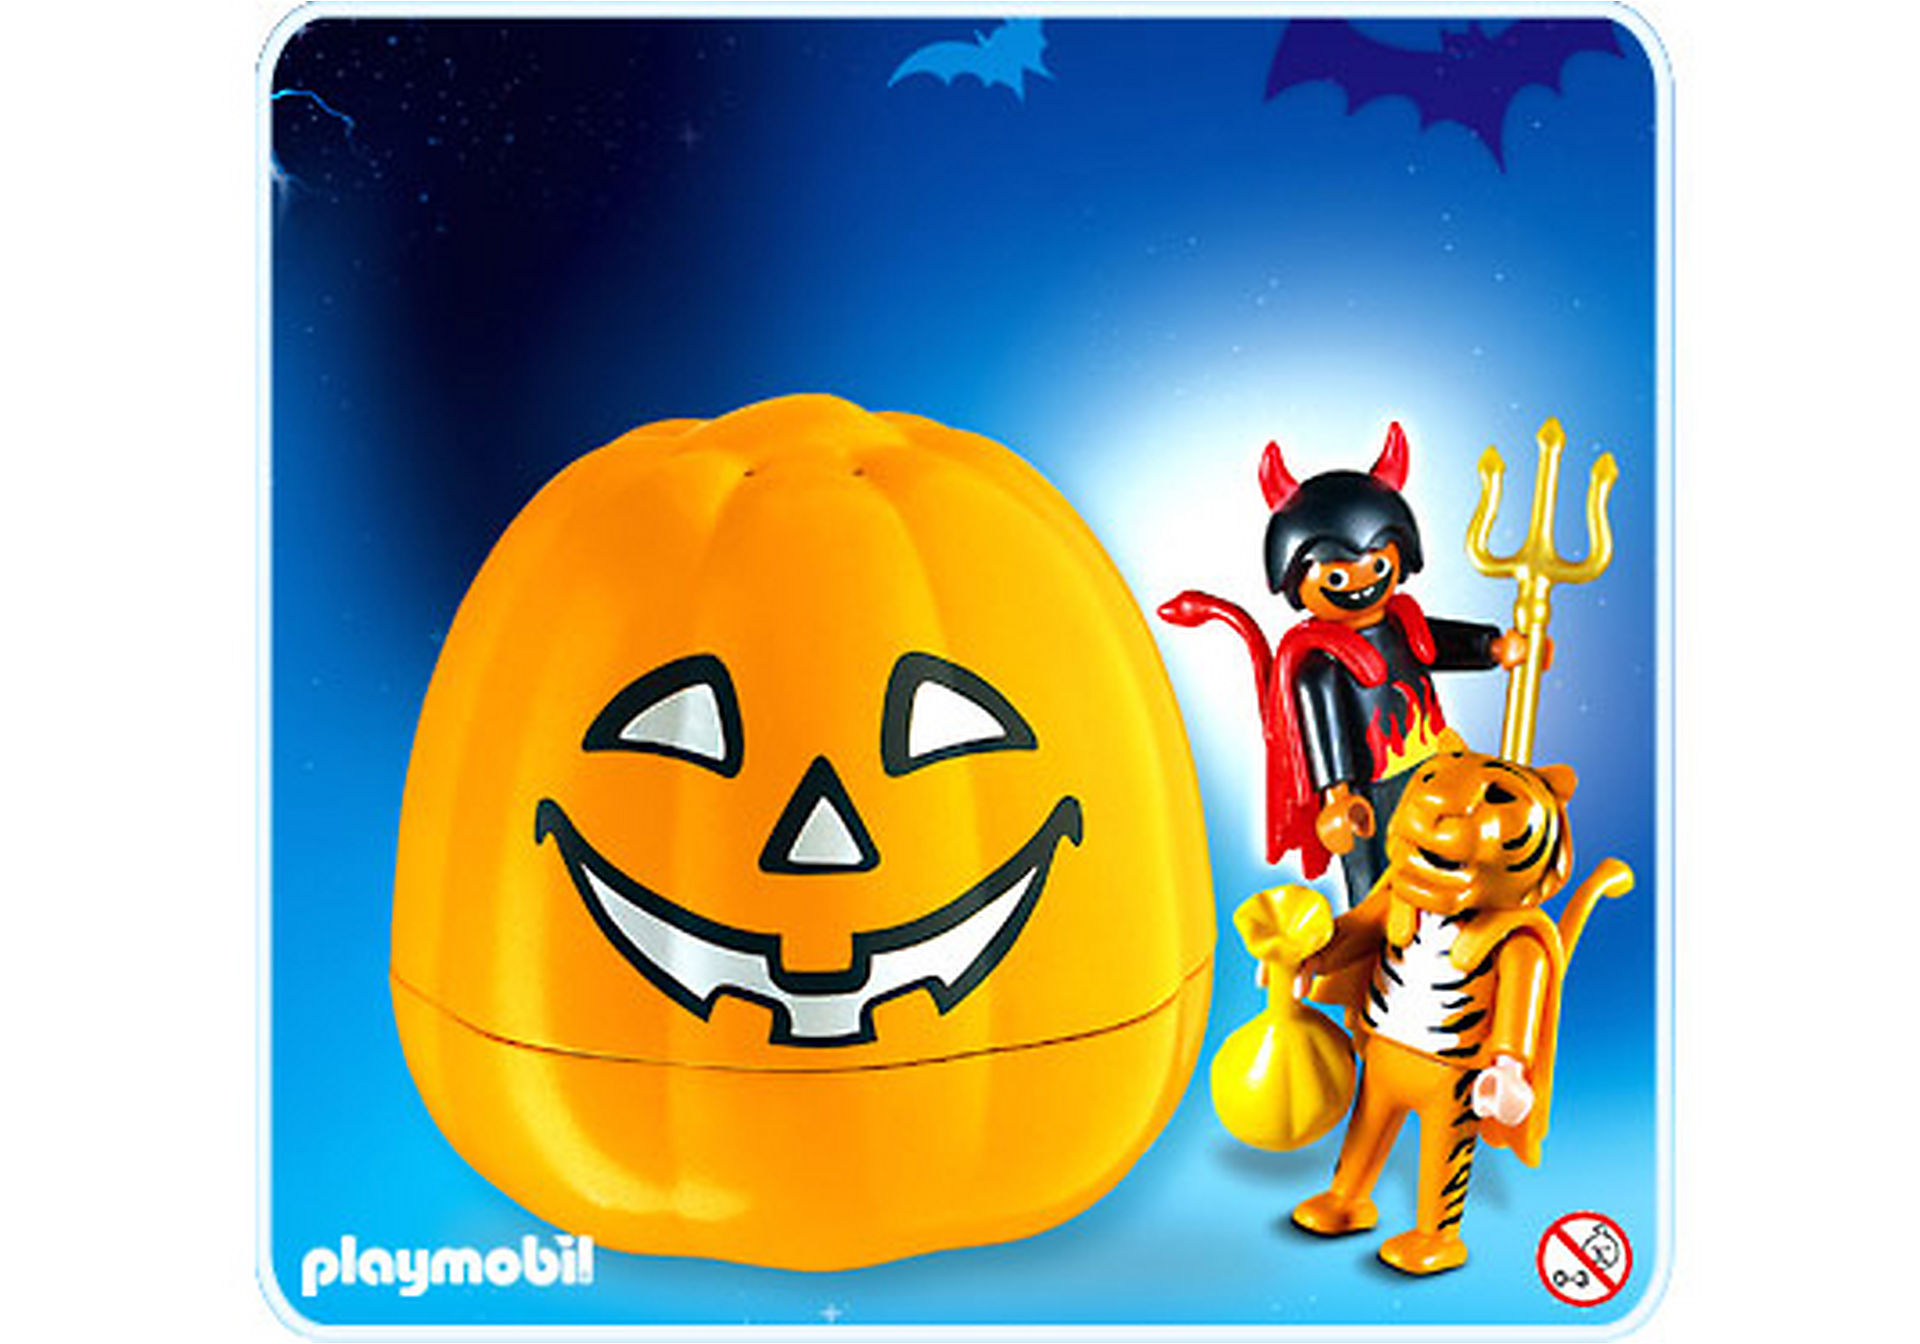 http://media.playmobil.com/i/playmobil/4770-A_product_detail/HalloweenSet - Tigerchen und Teufelchen